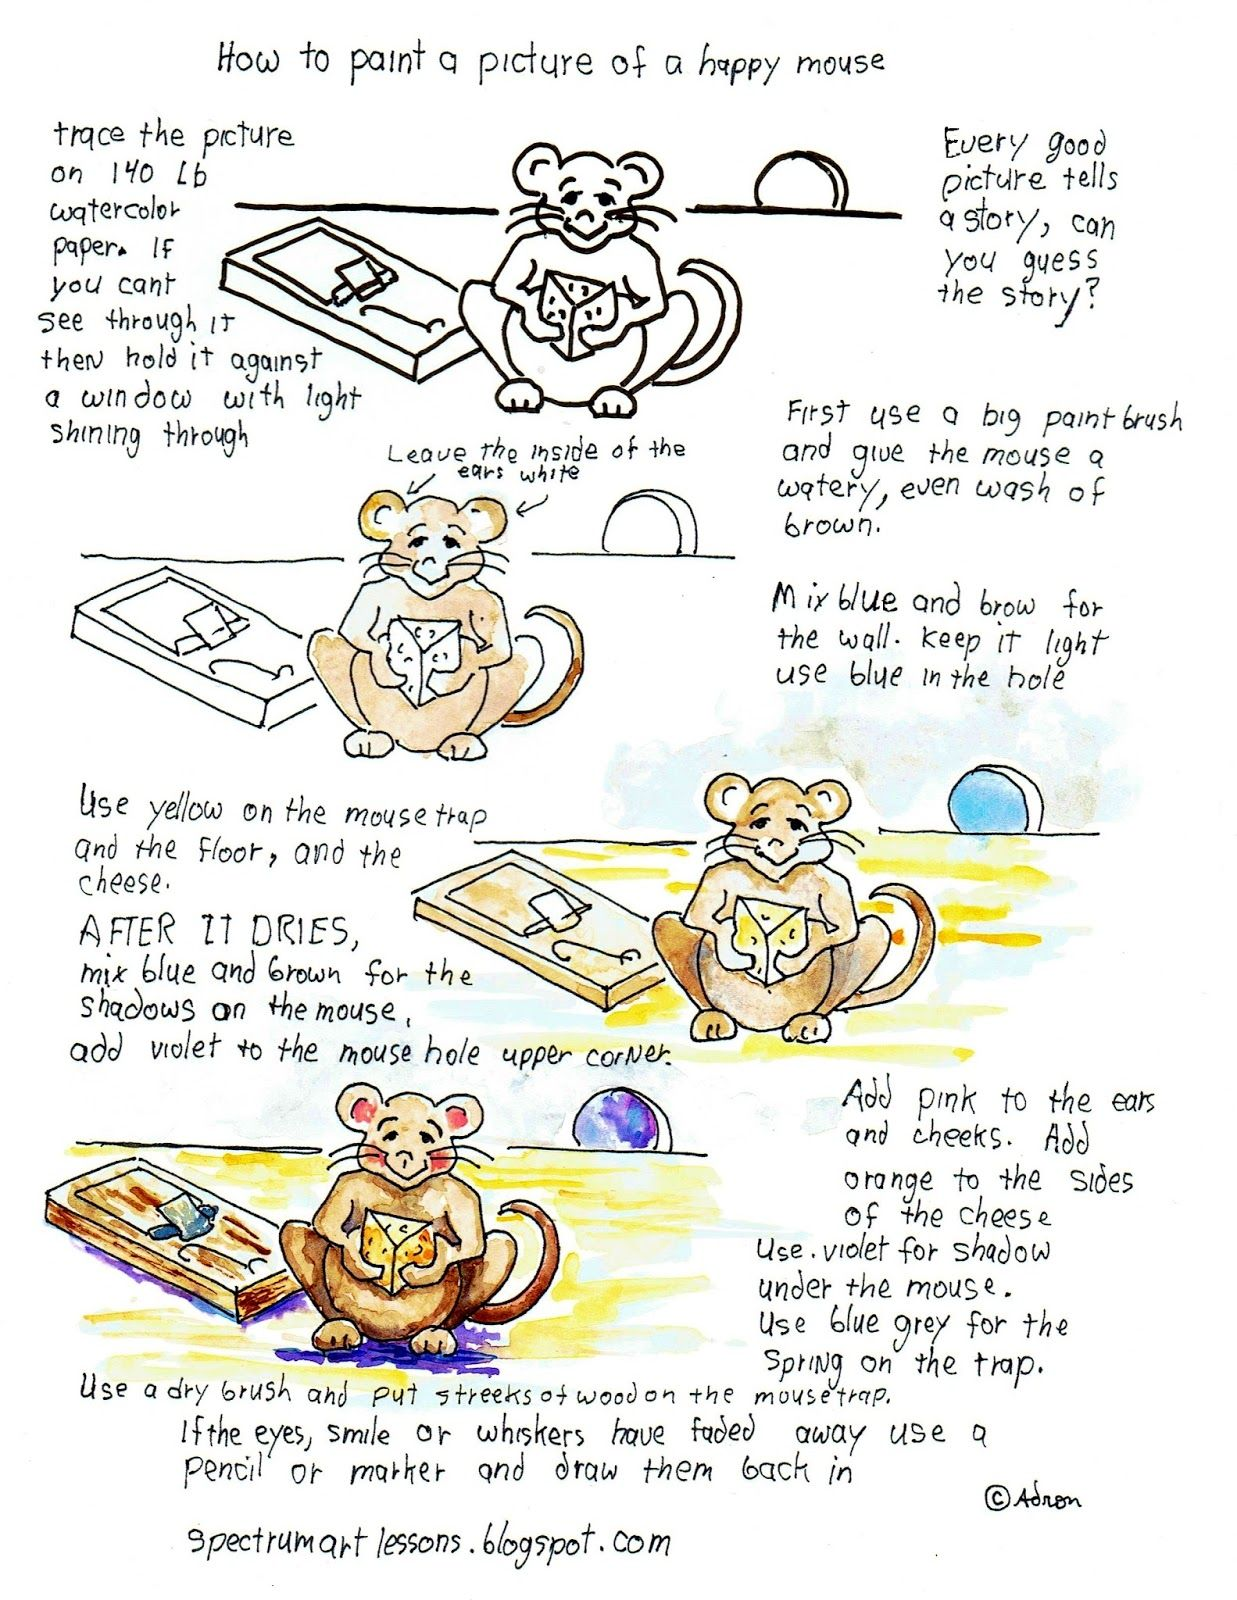 How To Paint A Happy Mouse Watercolor Printable Worksheet